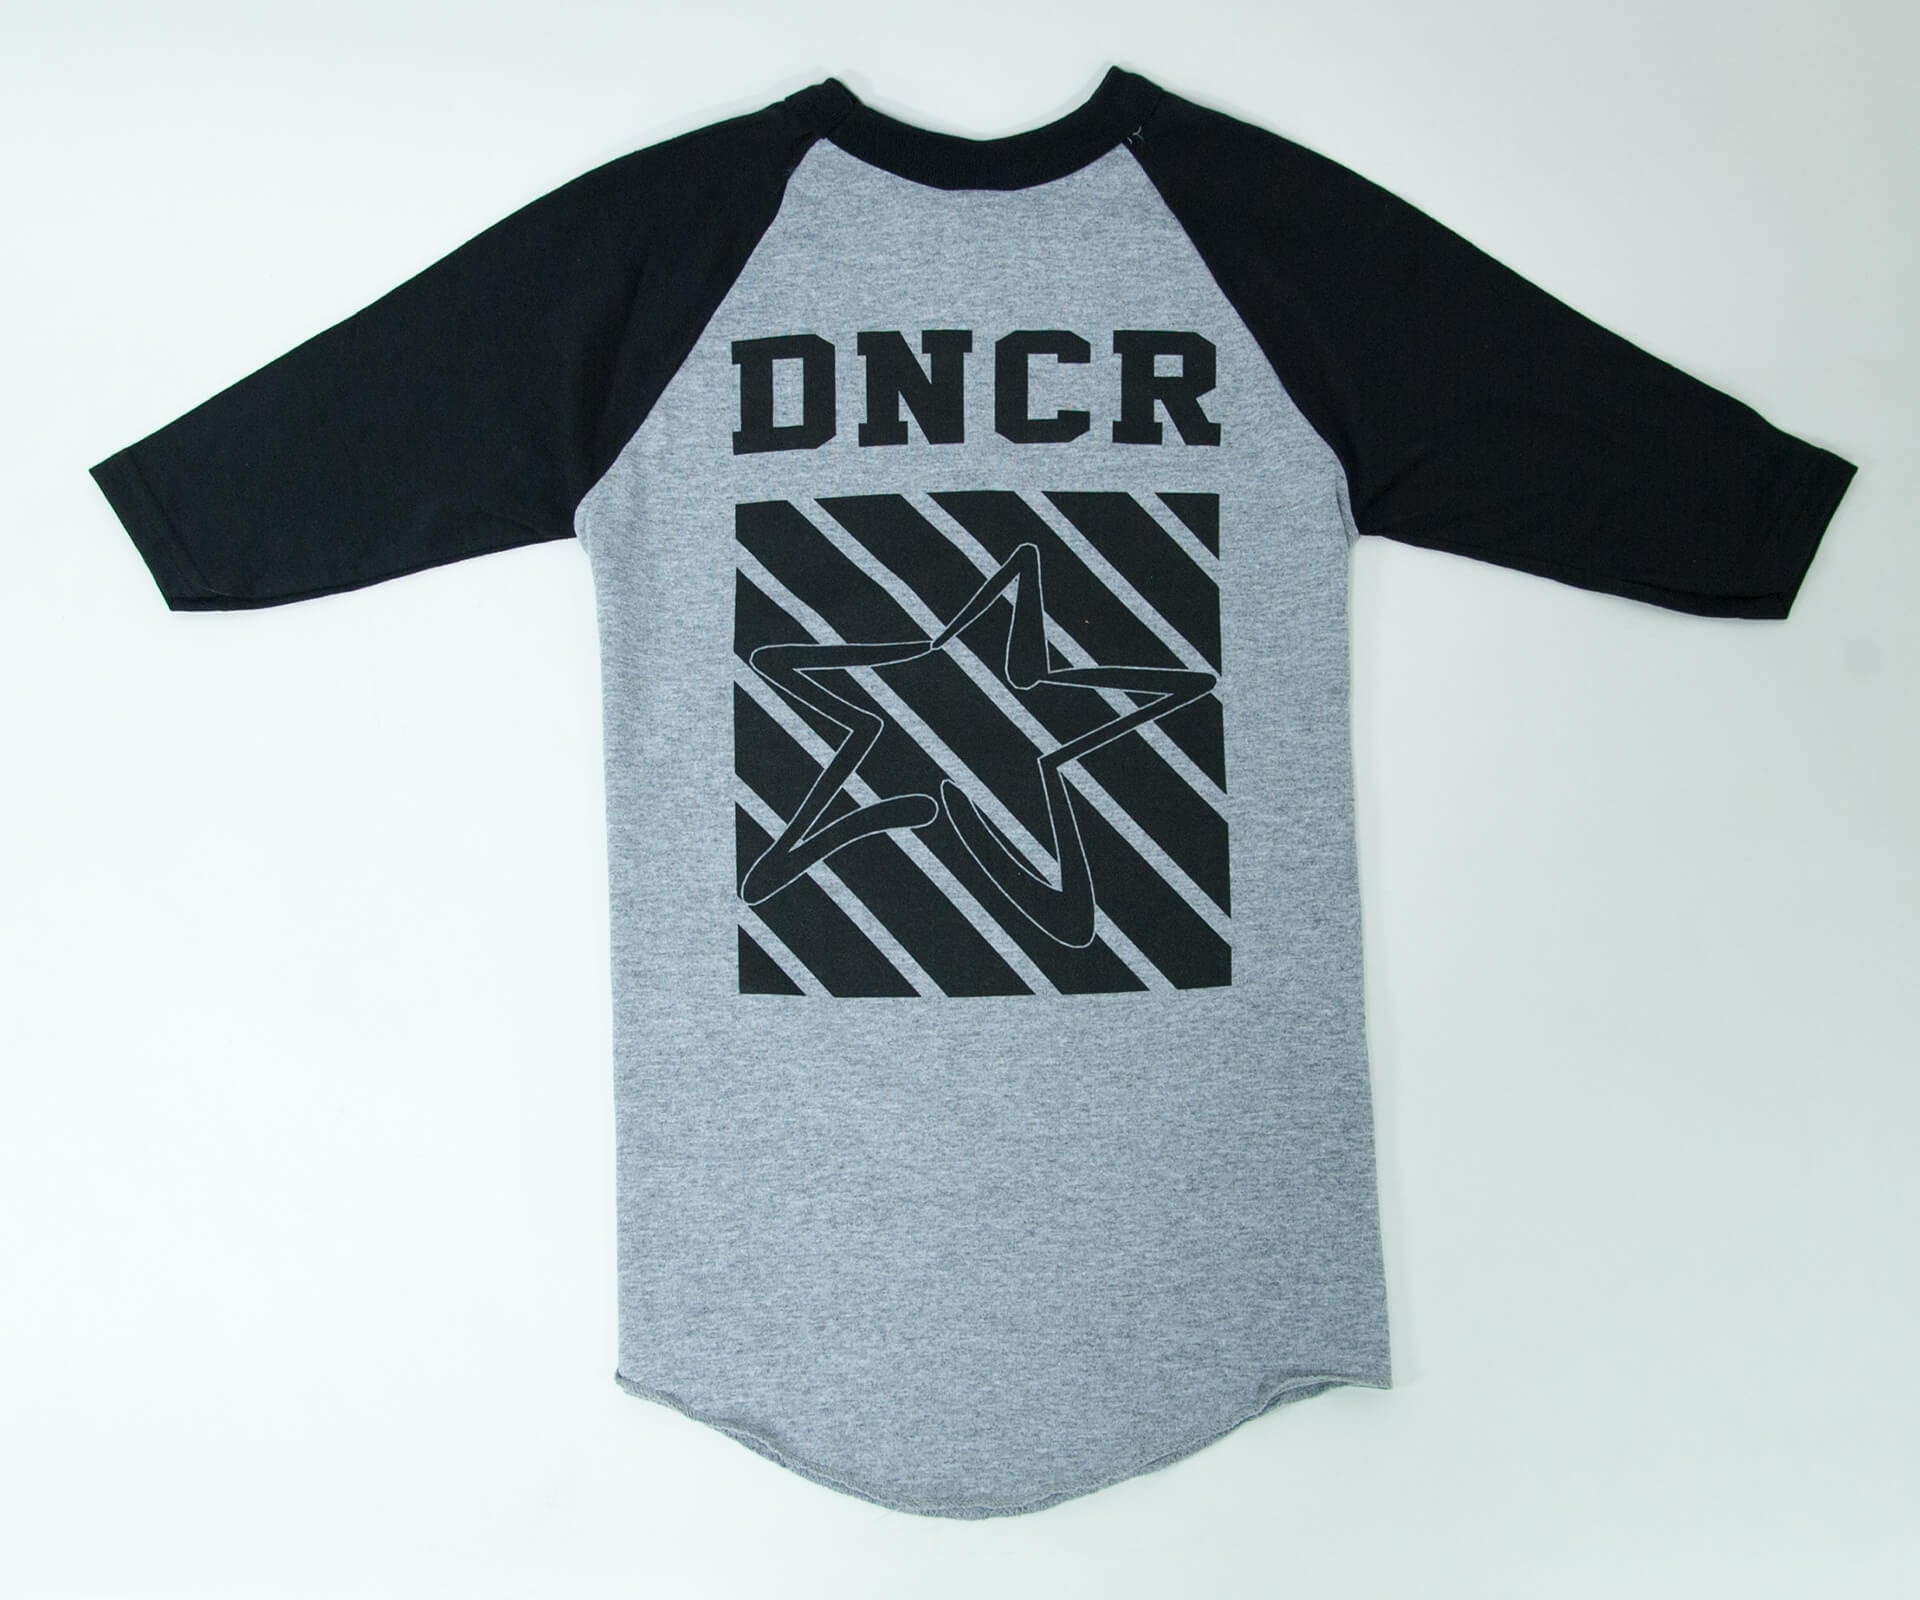 DNCR x KAR Youth Tee